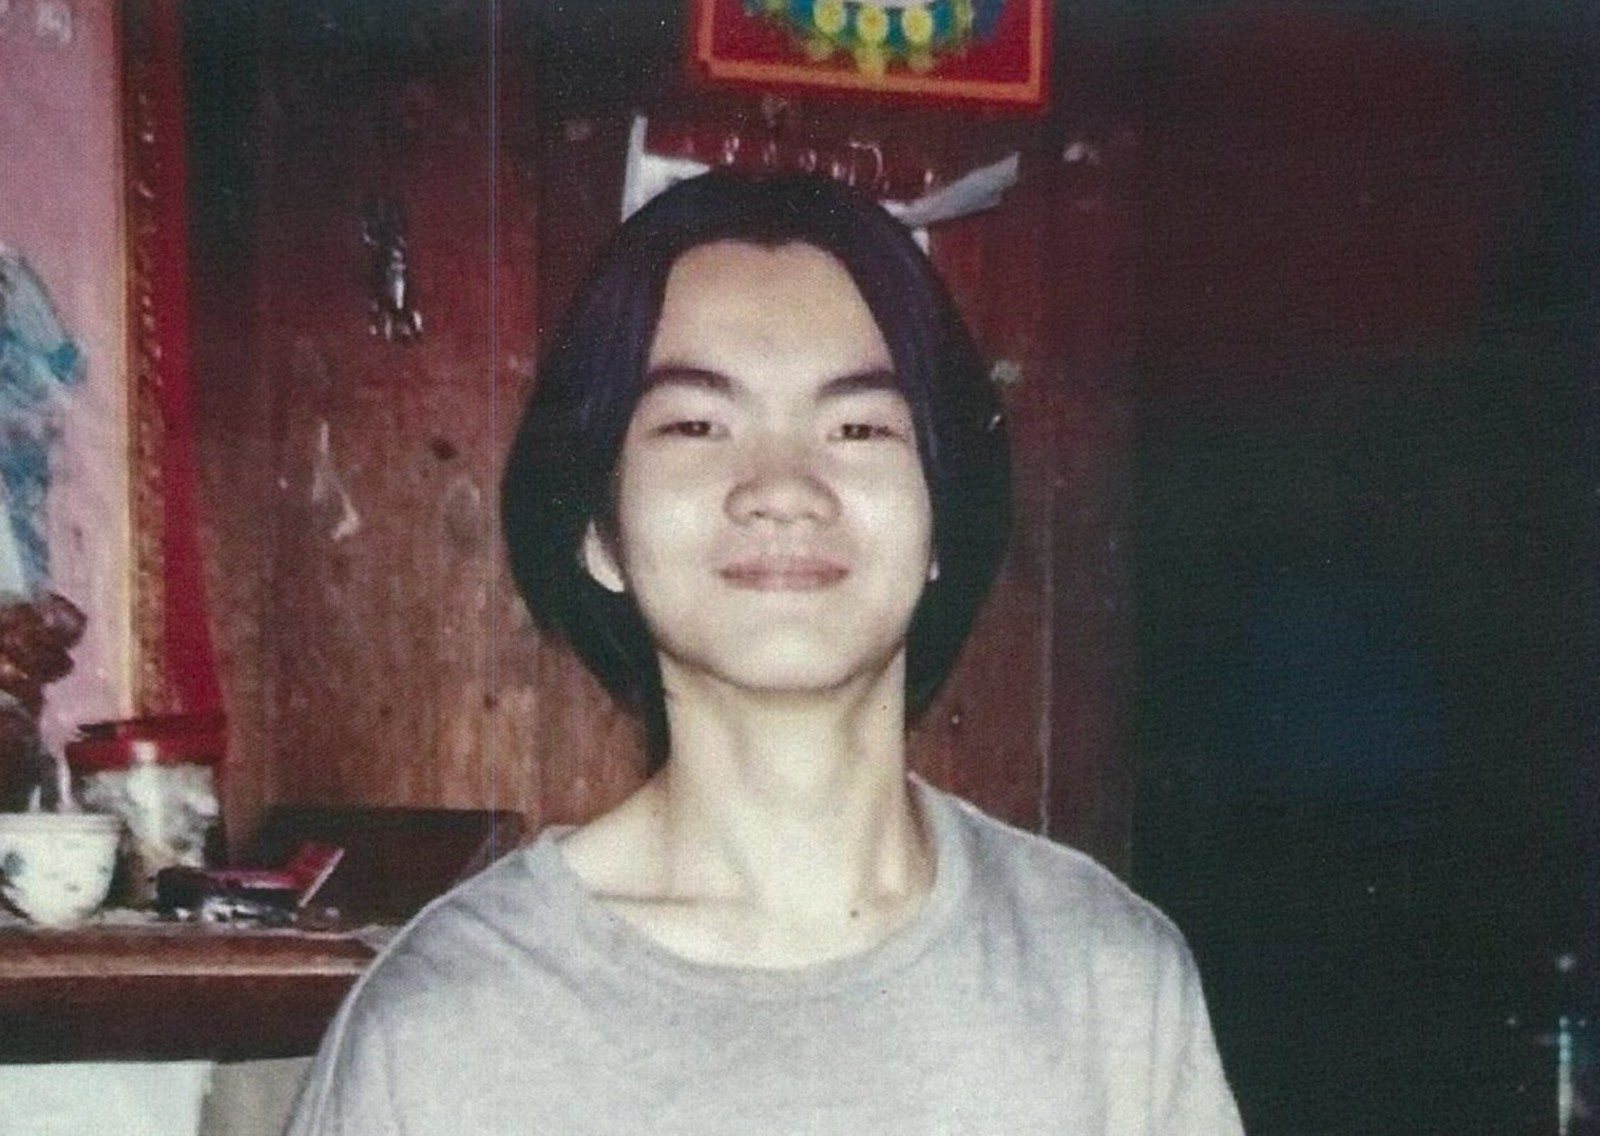 Malaysia: Give Hoo Yew clemency and abolish the death penalty